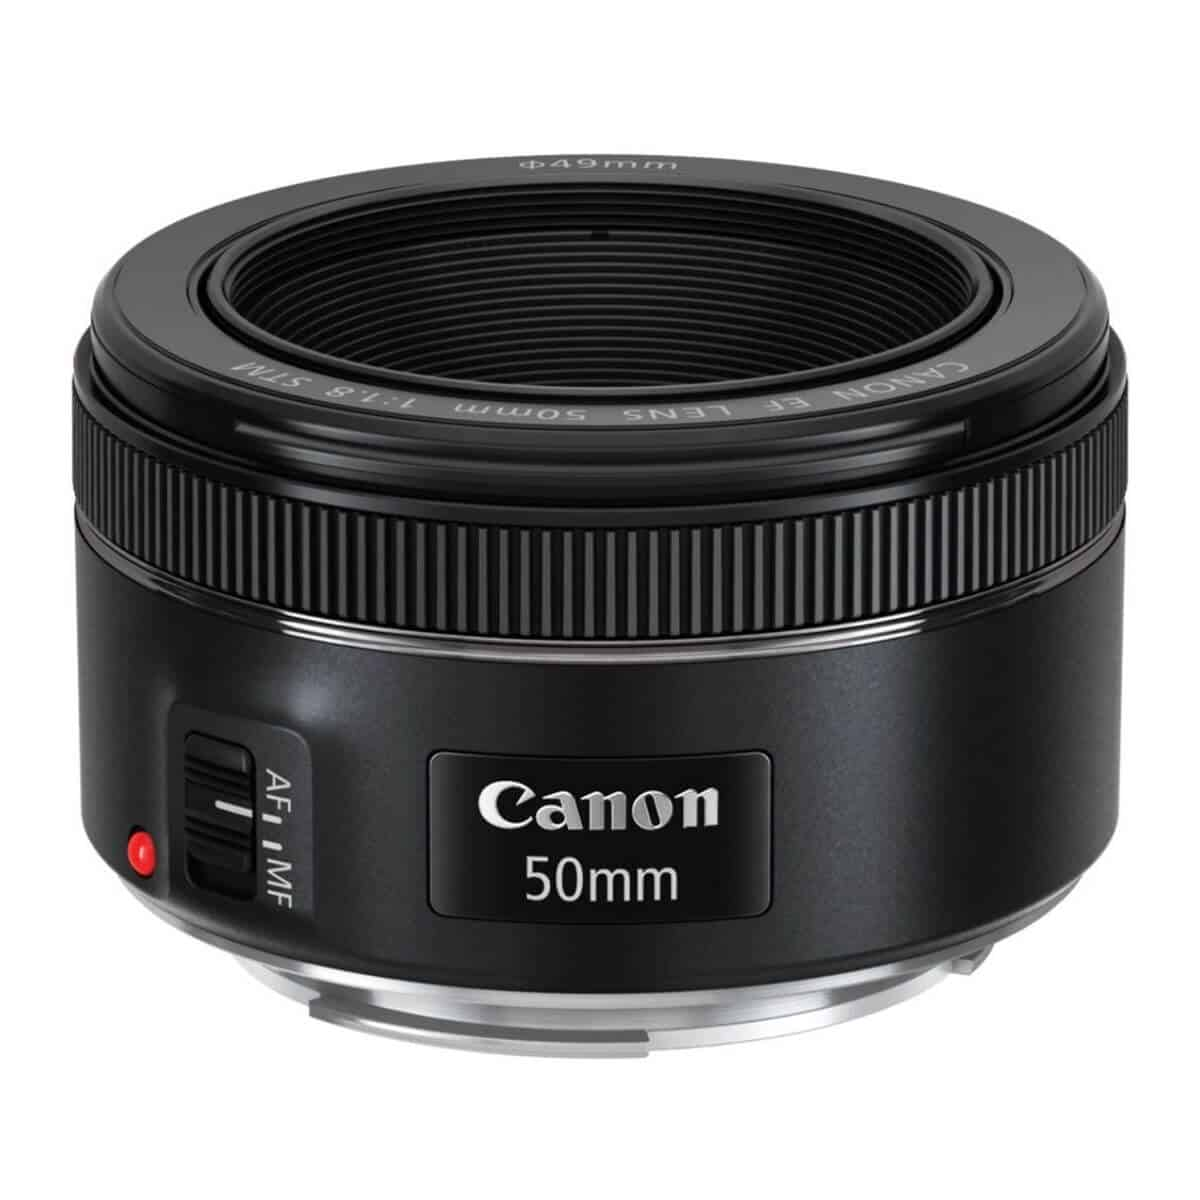 Canon 50mm f/1.8 camera lens.